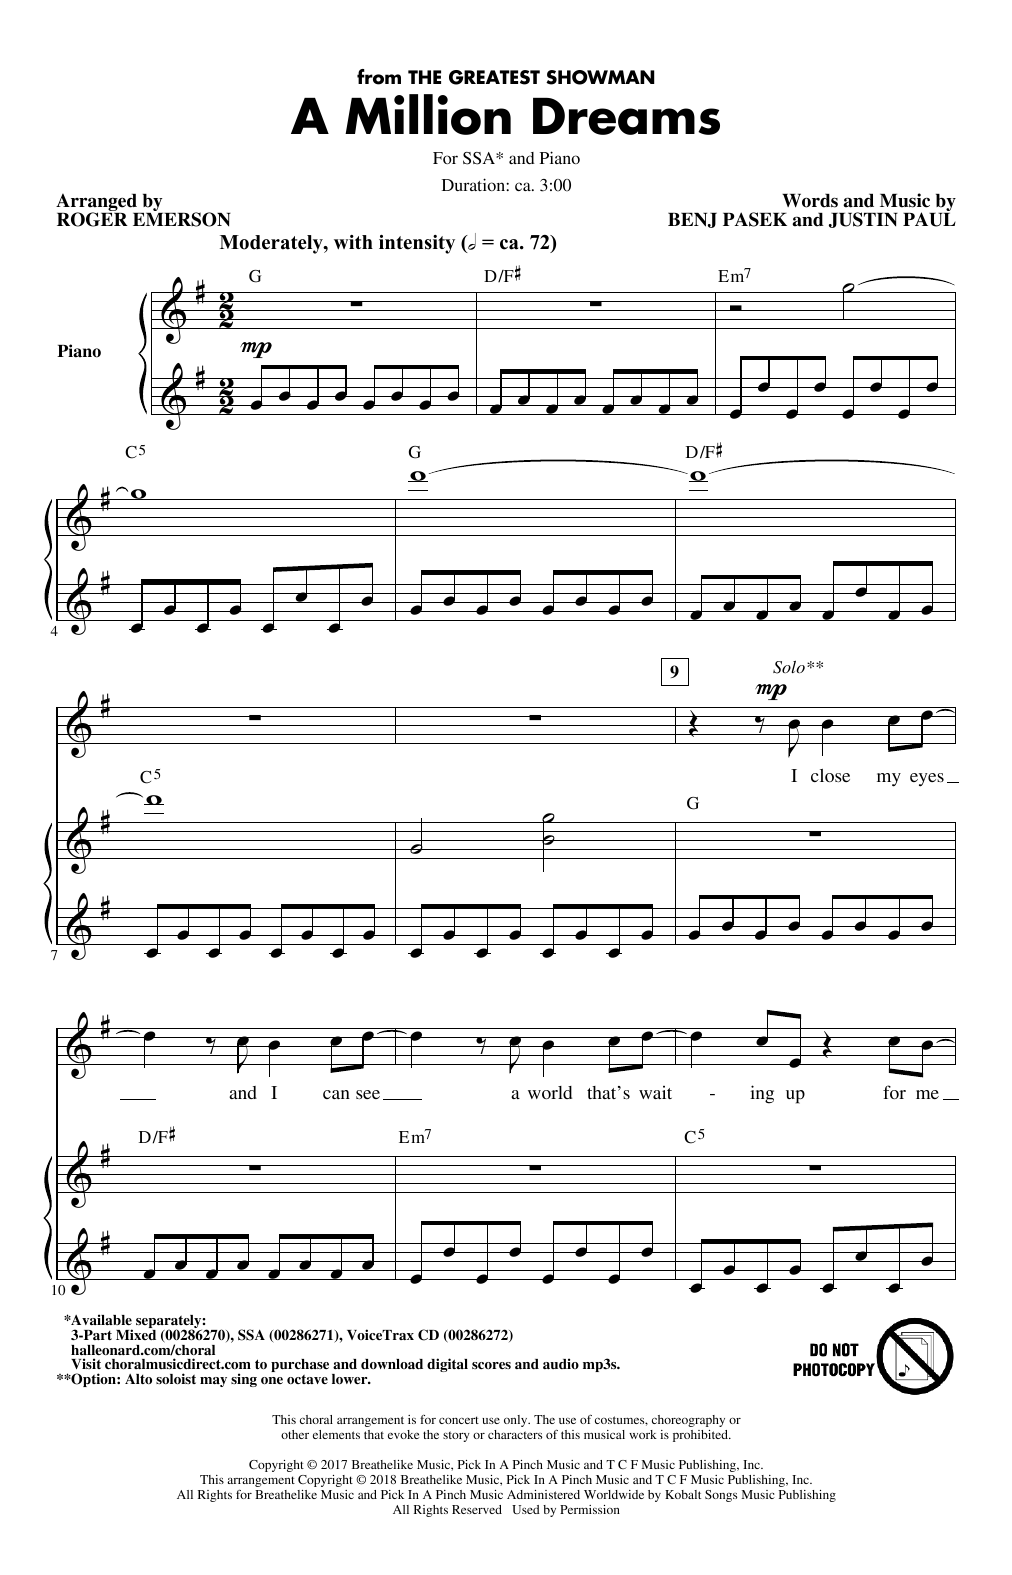 Pasek Paul A Million Dreams From The Greatest Showman Arr Roger Emerson Sheet Music Download Printable Film Tv Pdf Score How To Play On Ssa Choir Sku 407165